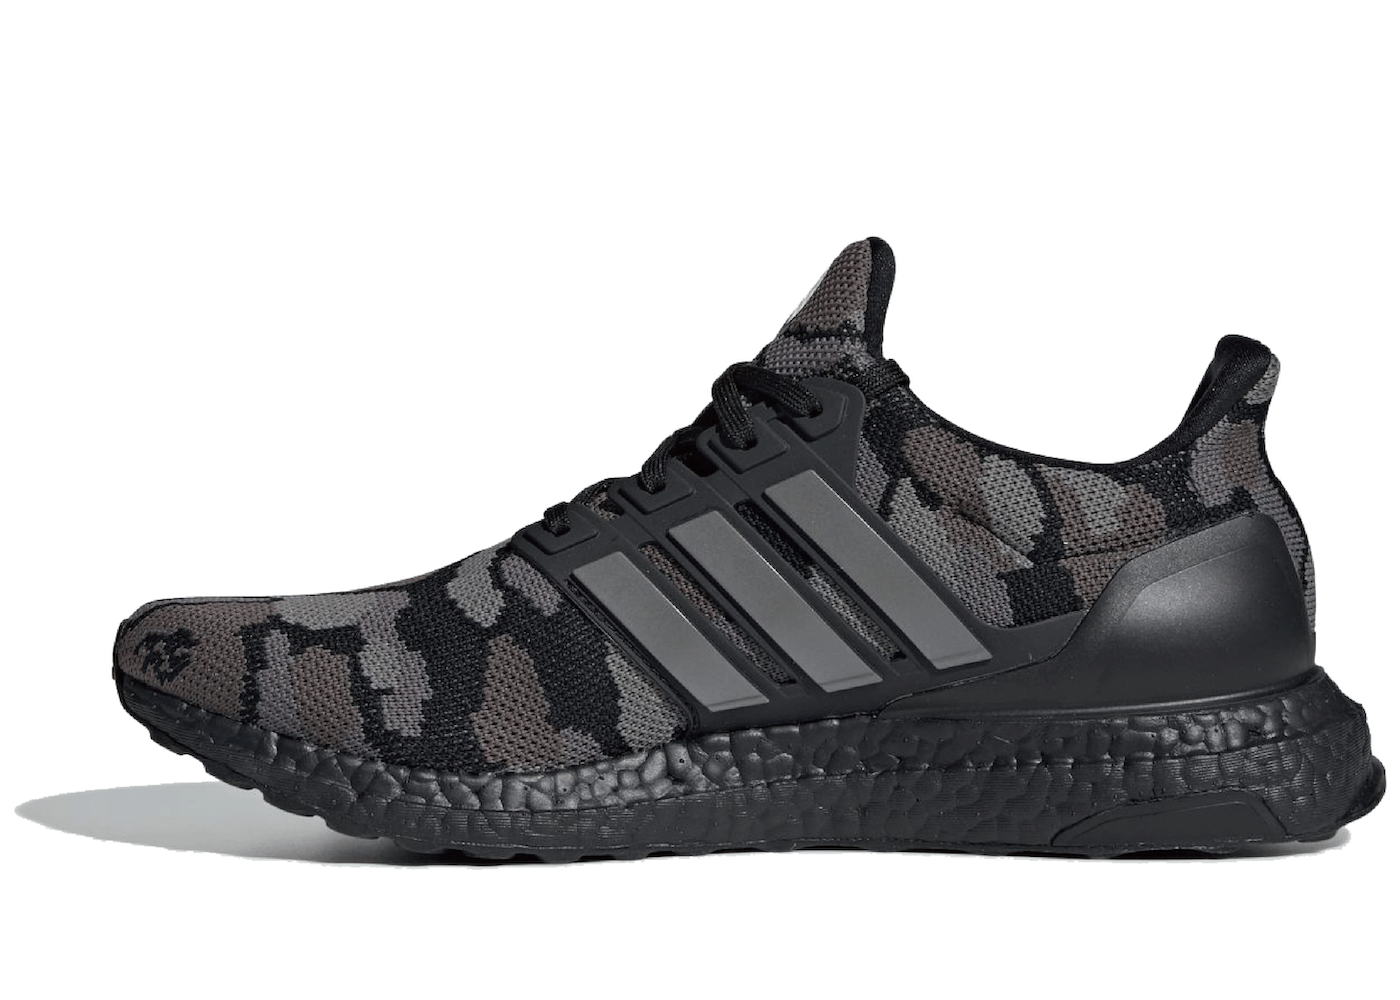 Adidas Ultra Boost 4.0 Bape Camo Blackの写真